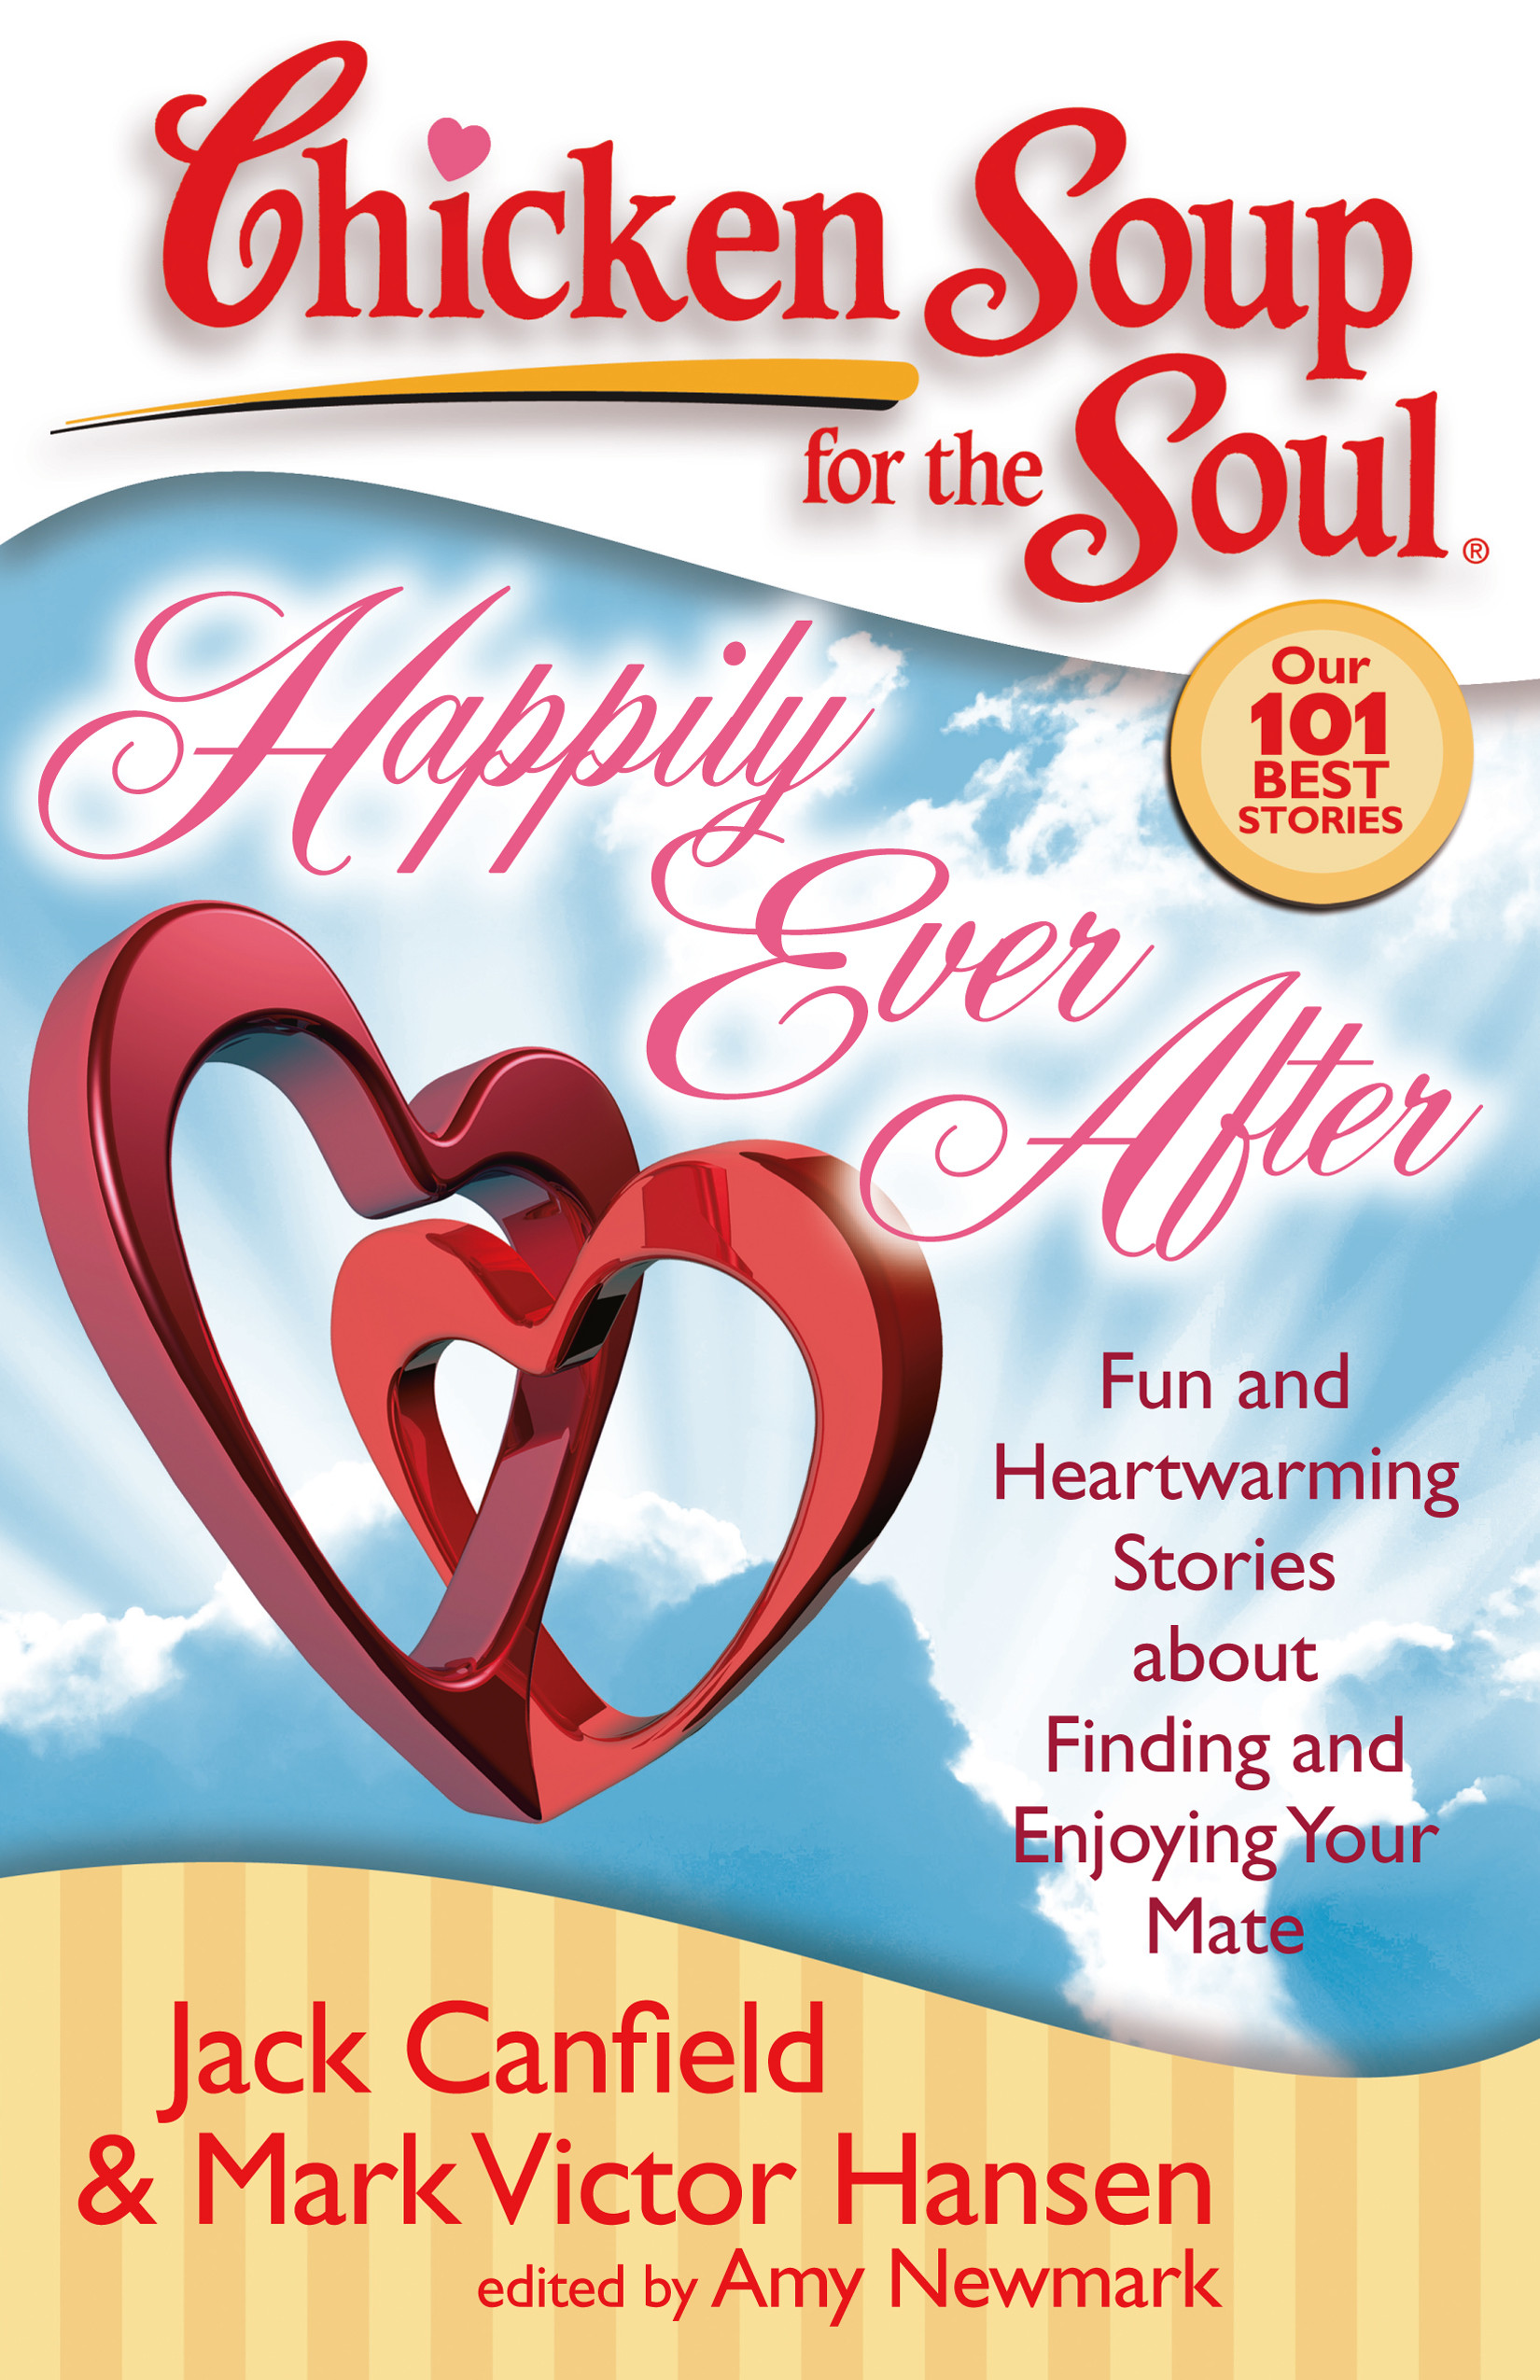 Chicken Soup For The Soul Stories  Chicken Soup for the Soul Happily Ever After